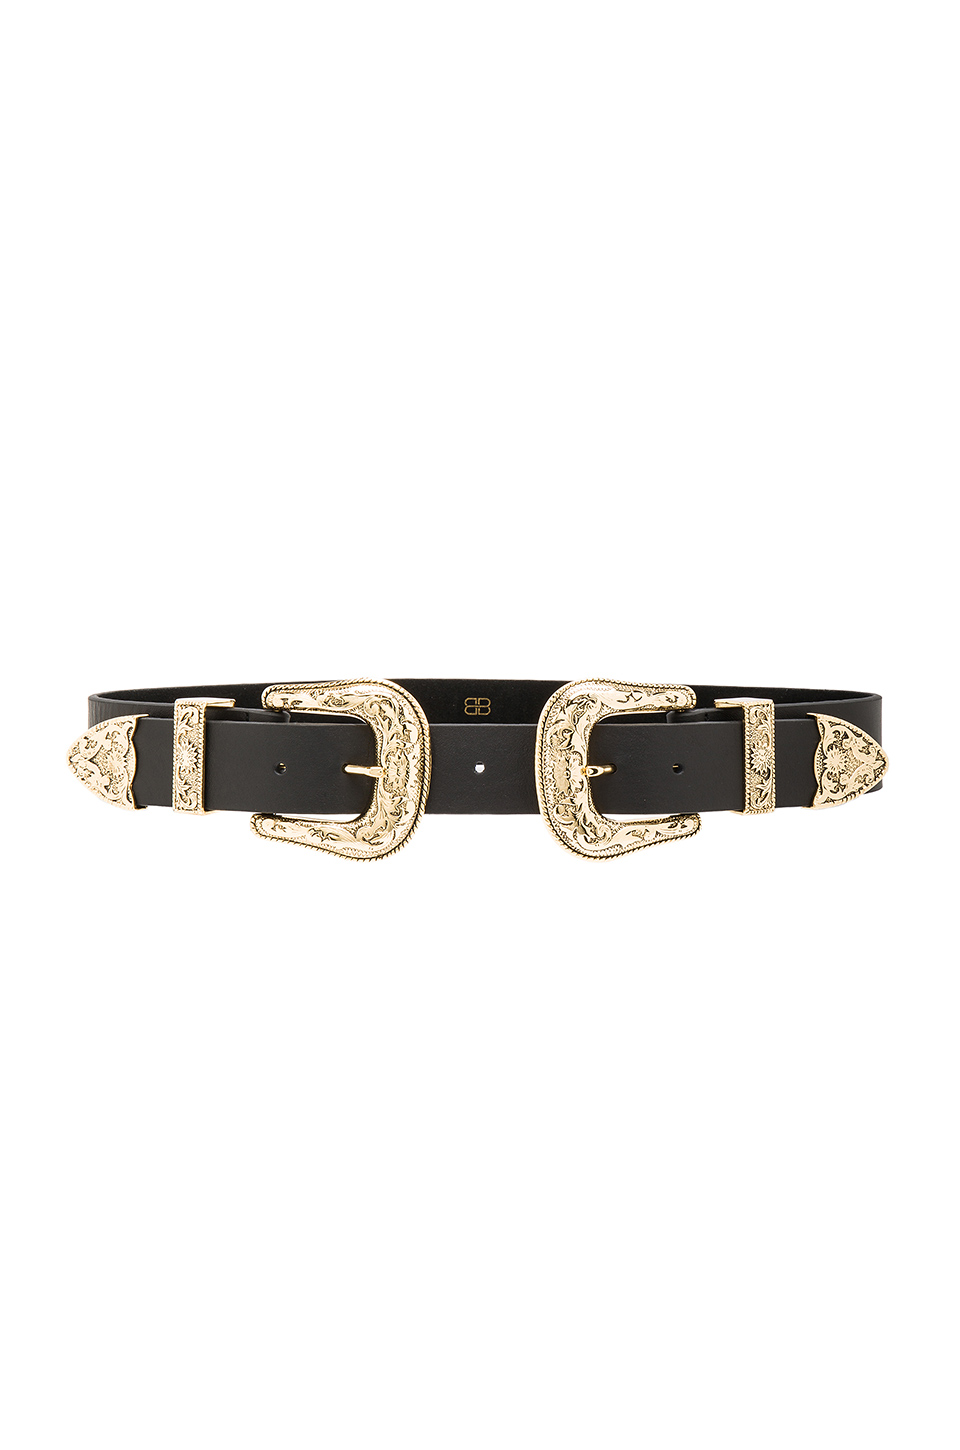 B-Low the Belt Bri Bri Waist Belt in Black & Gold